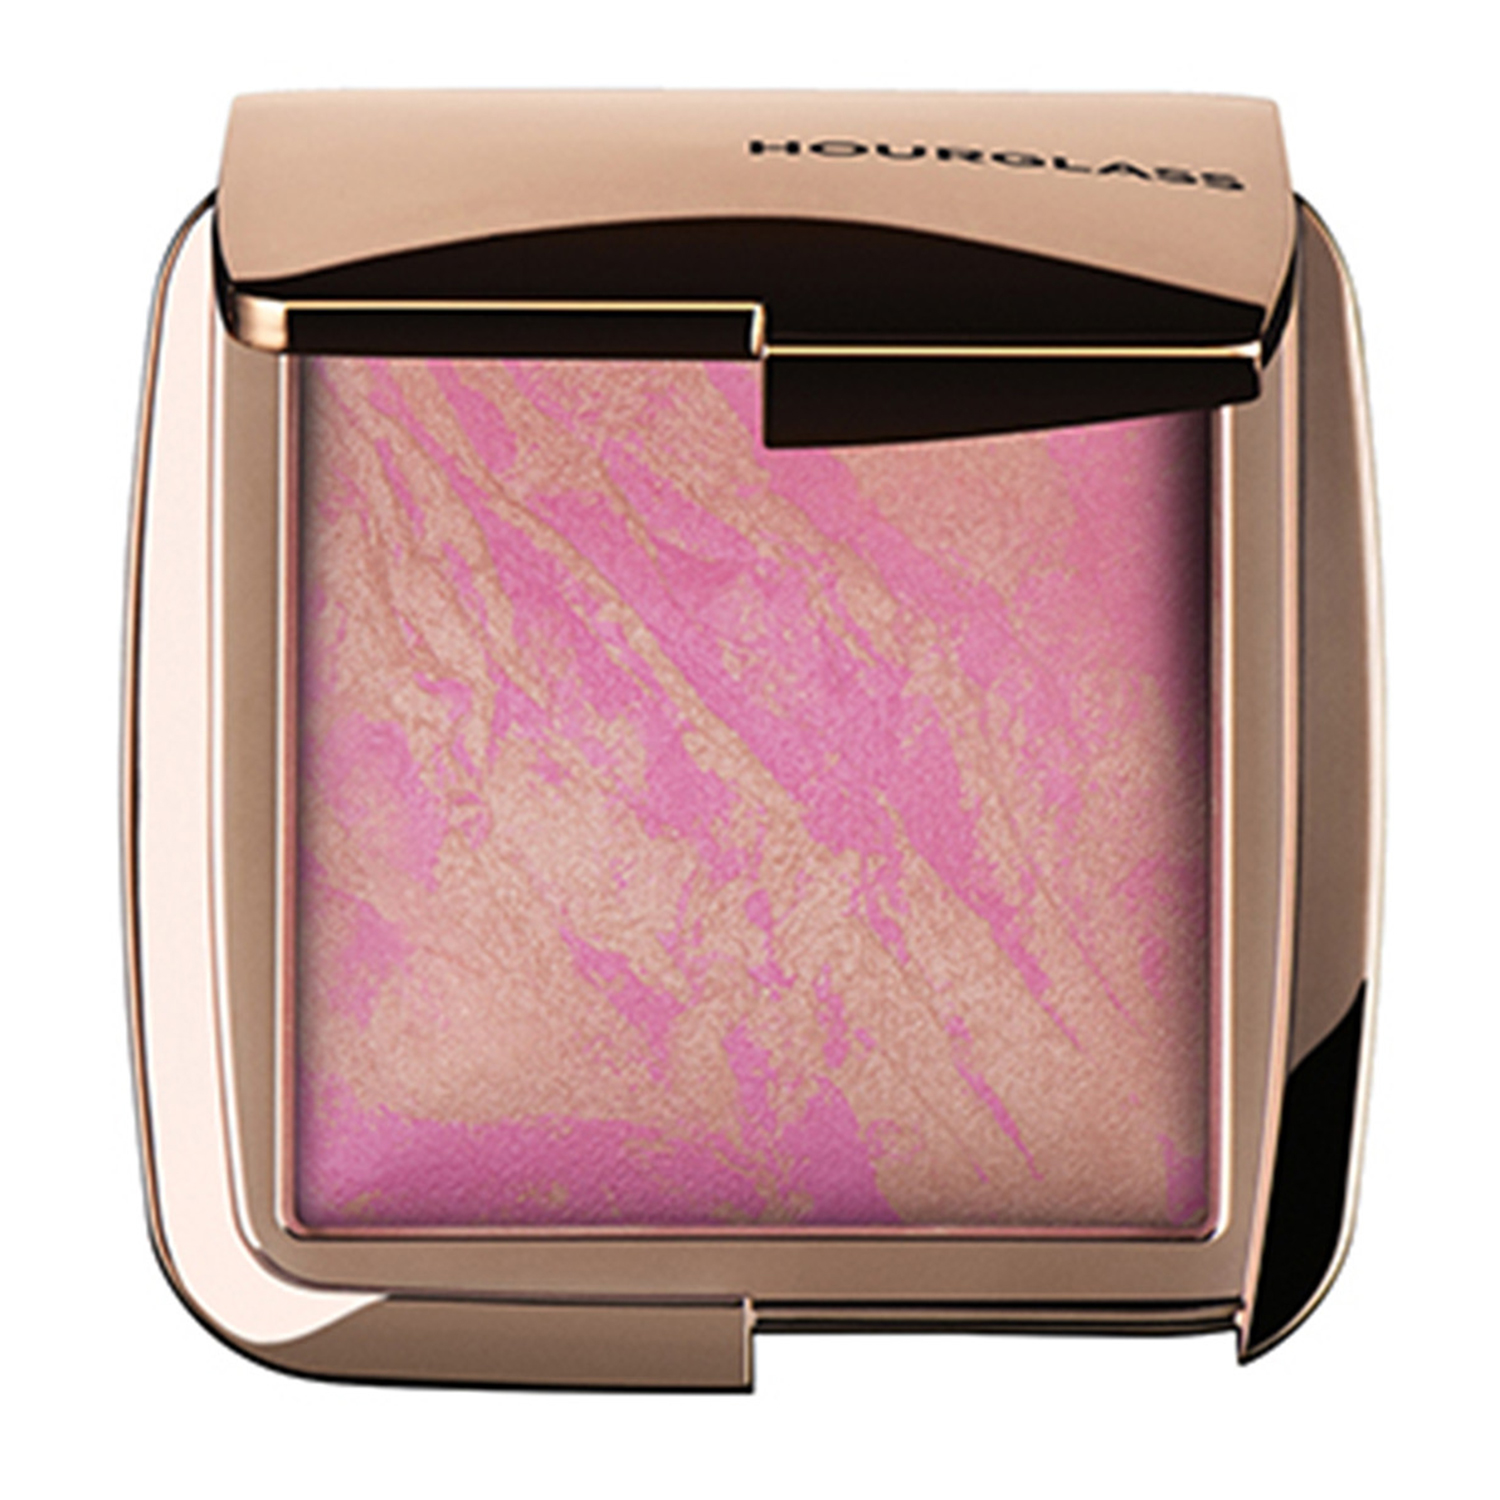 Hourglass 0.15oz Radiant Magenta Ambient Lighting Blush